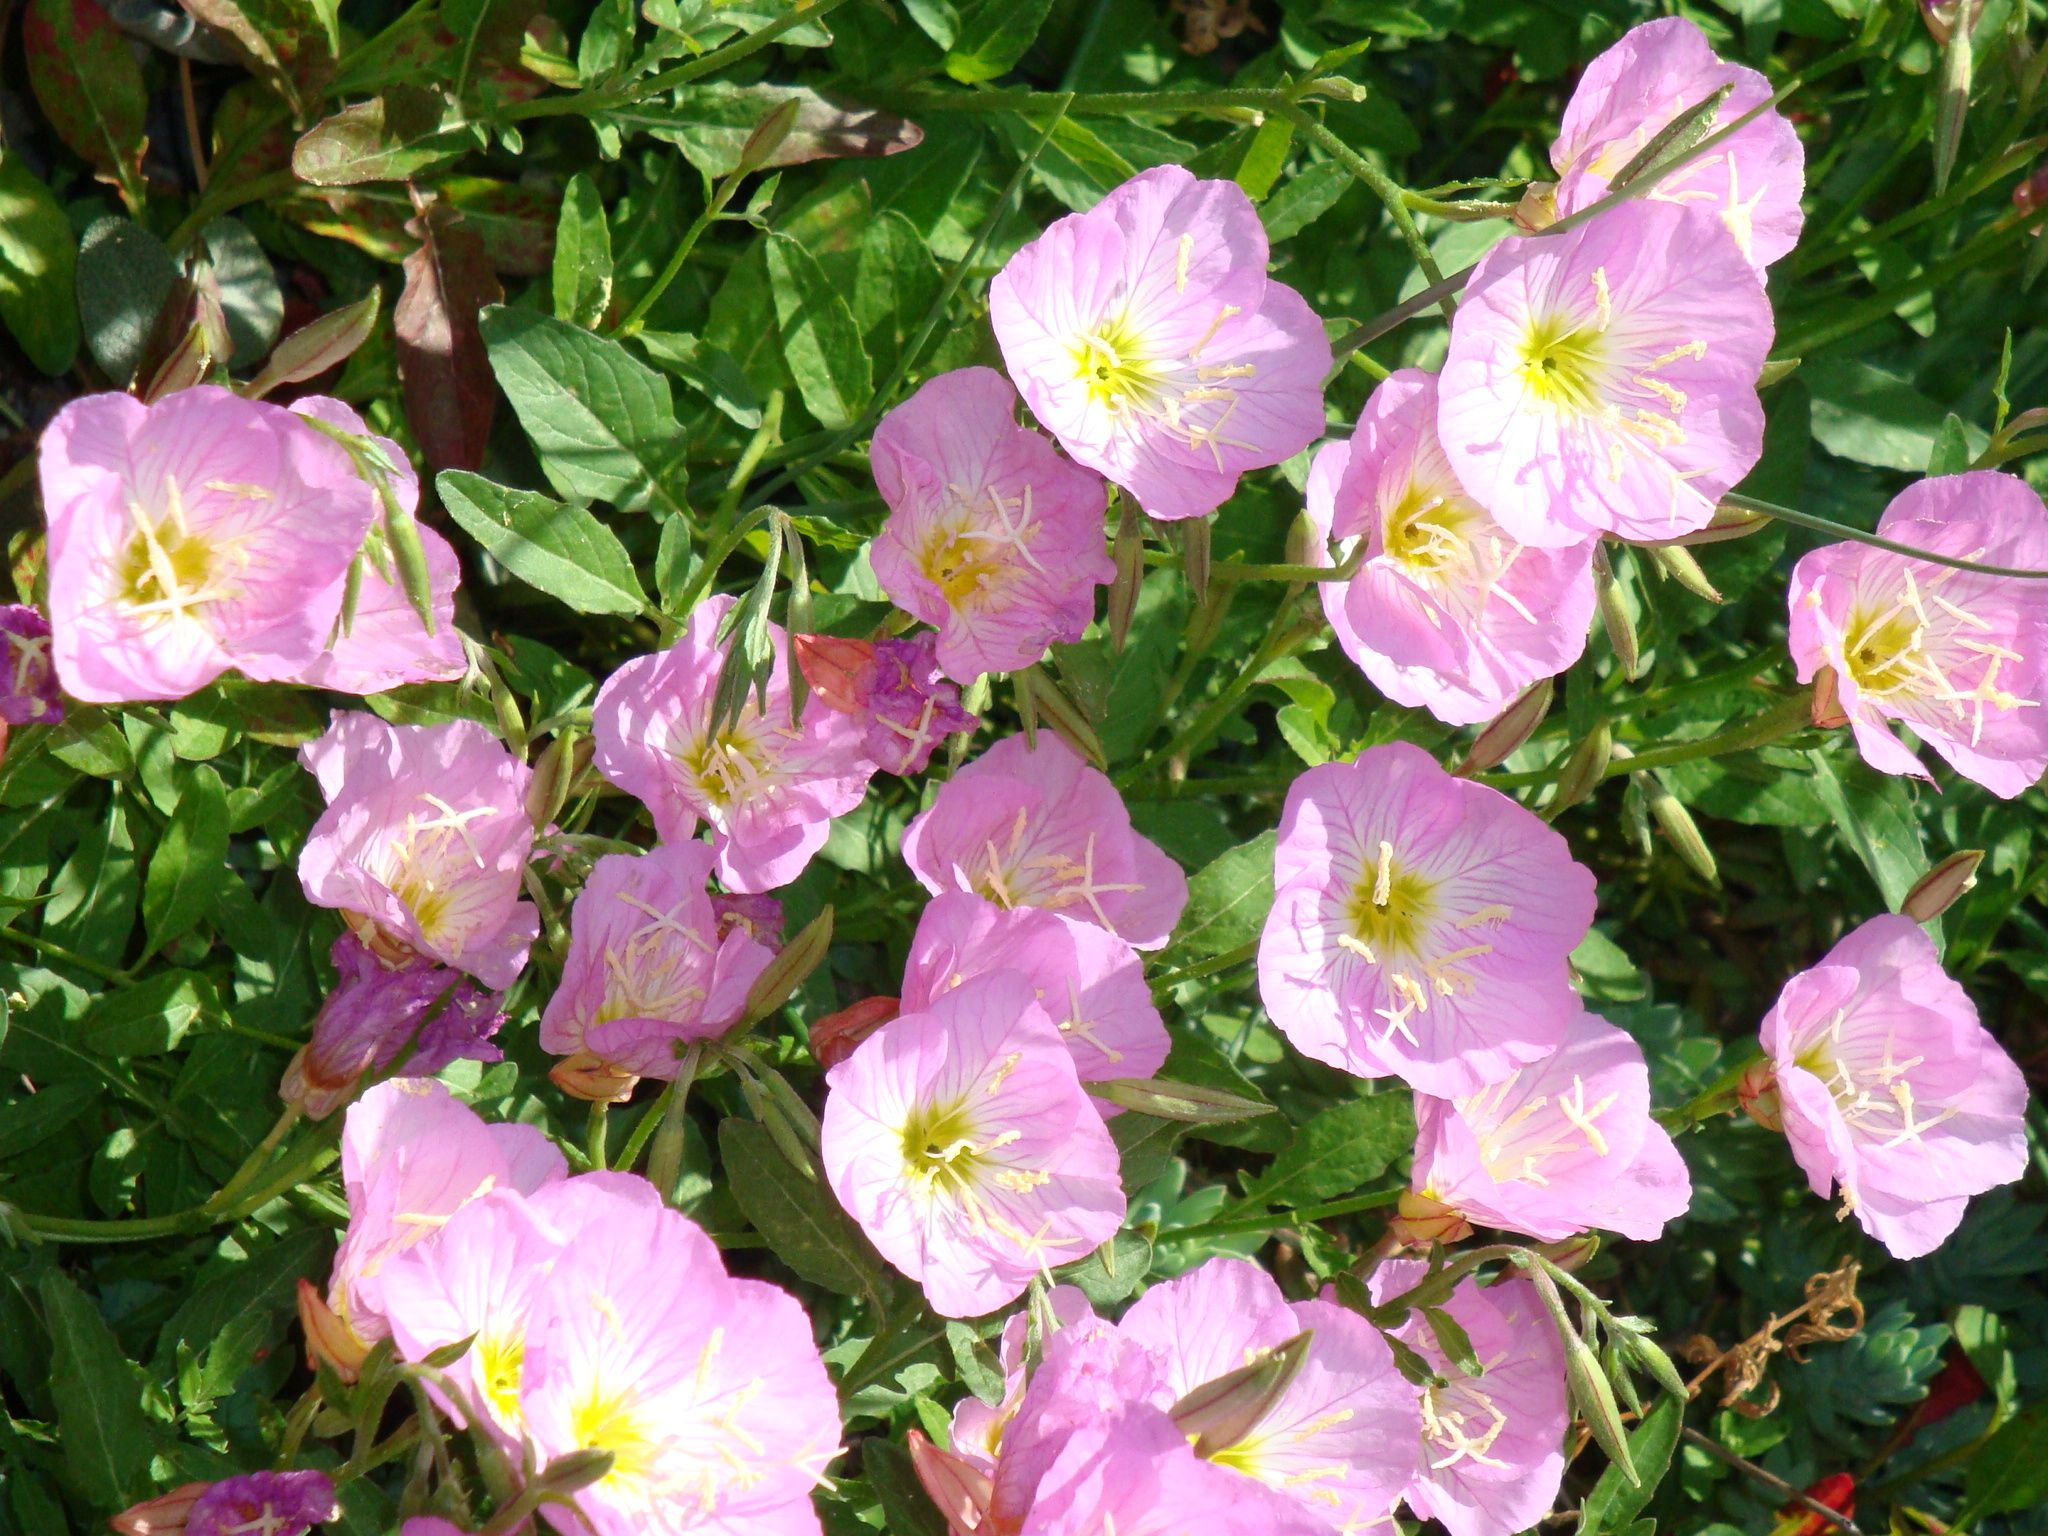 Pink evening primrose open up shine evening primrose plants and flowers mightylinksfo Image collections